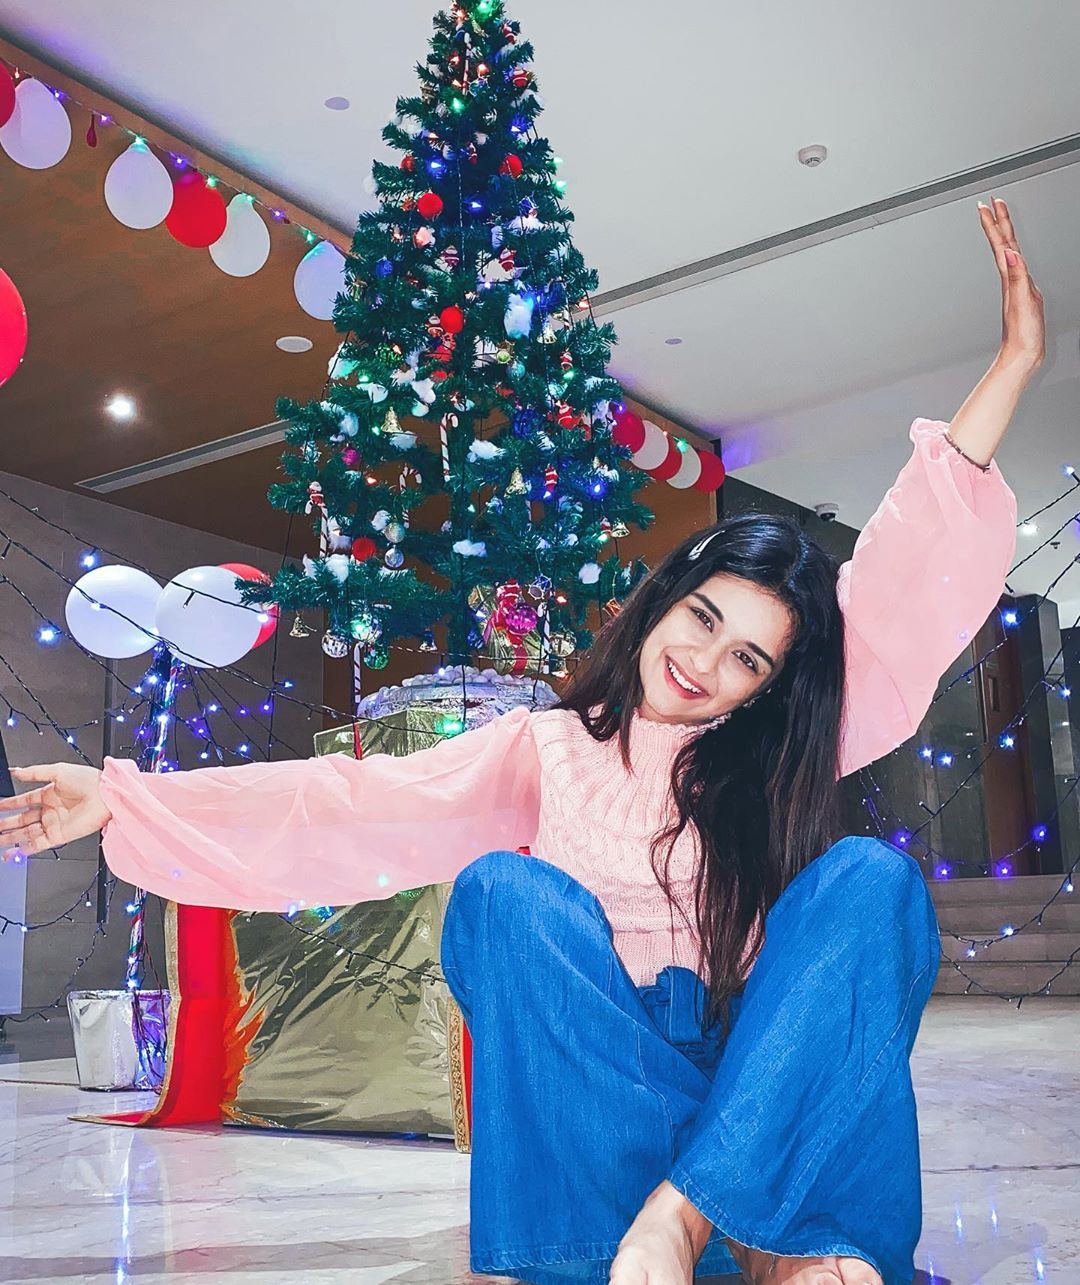 Avneet Kaur Wallpapers, Photos, Images &Amp; Pictures Dear Santa, Just Leave Your Credit Card Under The Tree. Merry Christmas Everyone Wearing- -